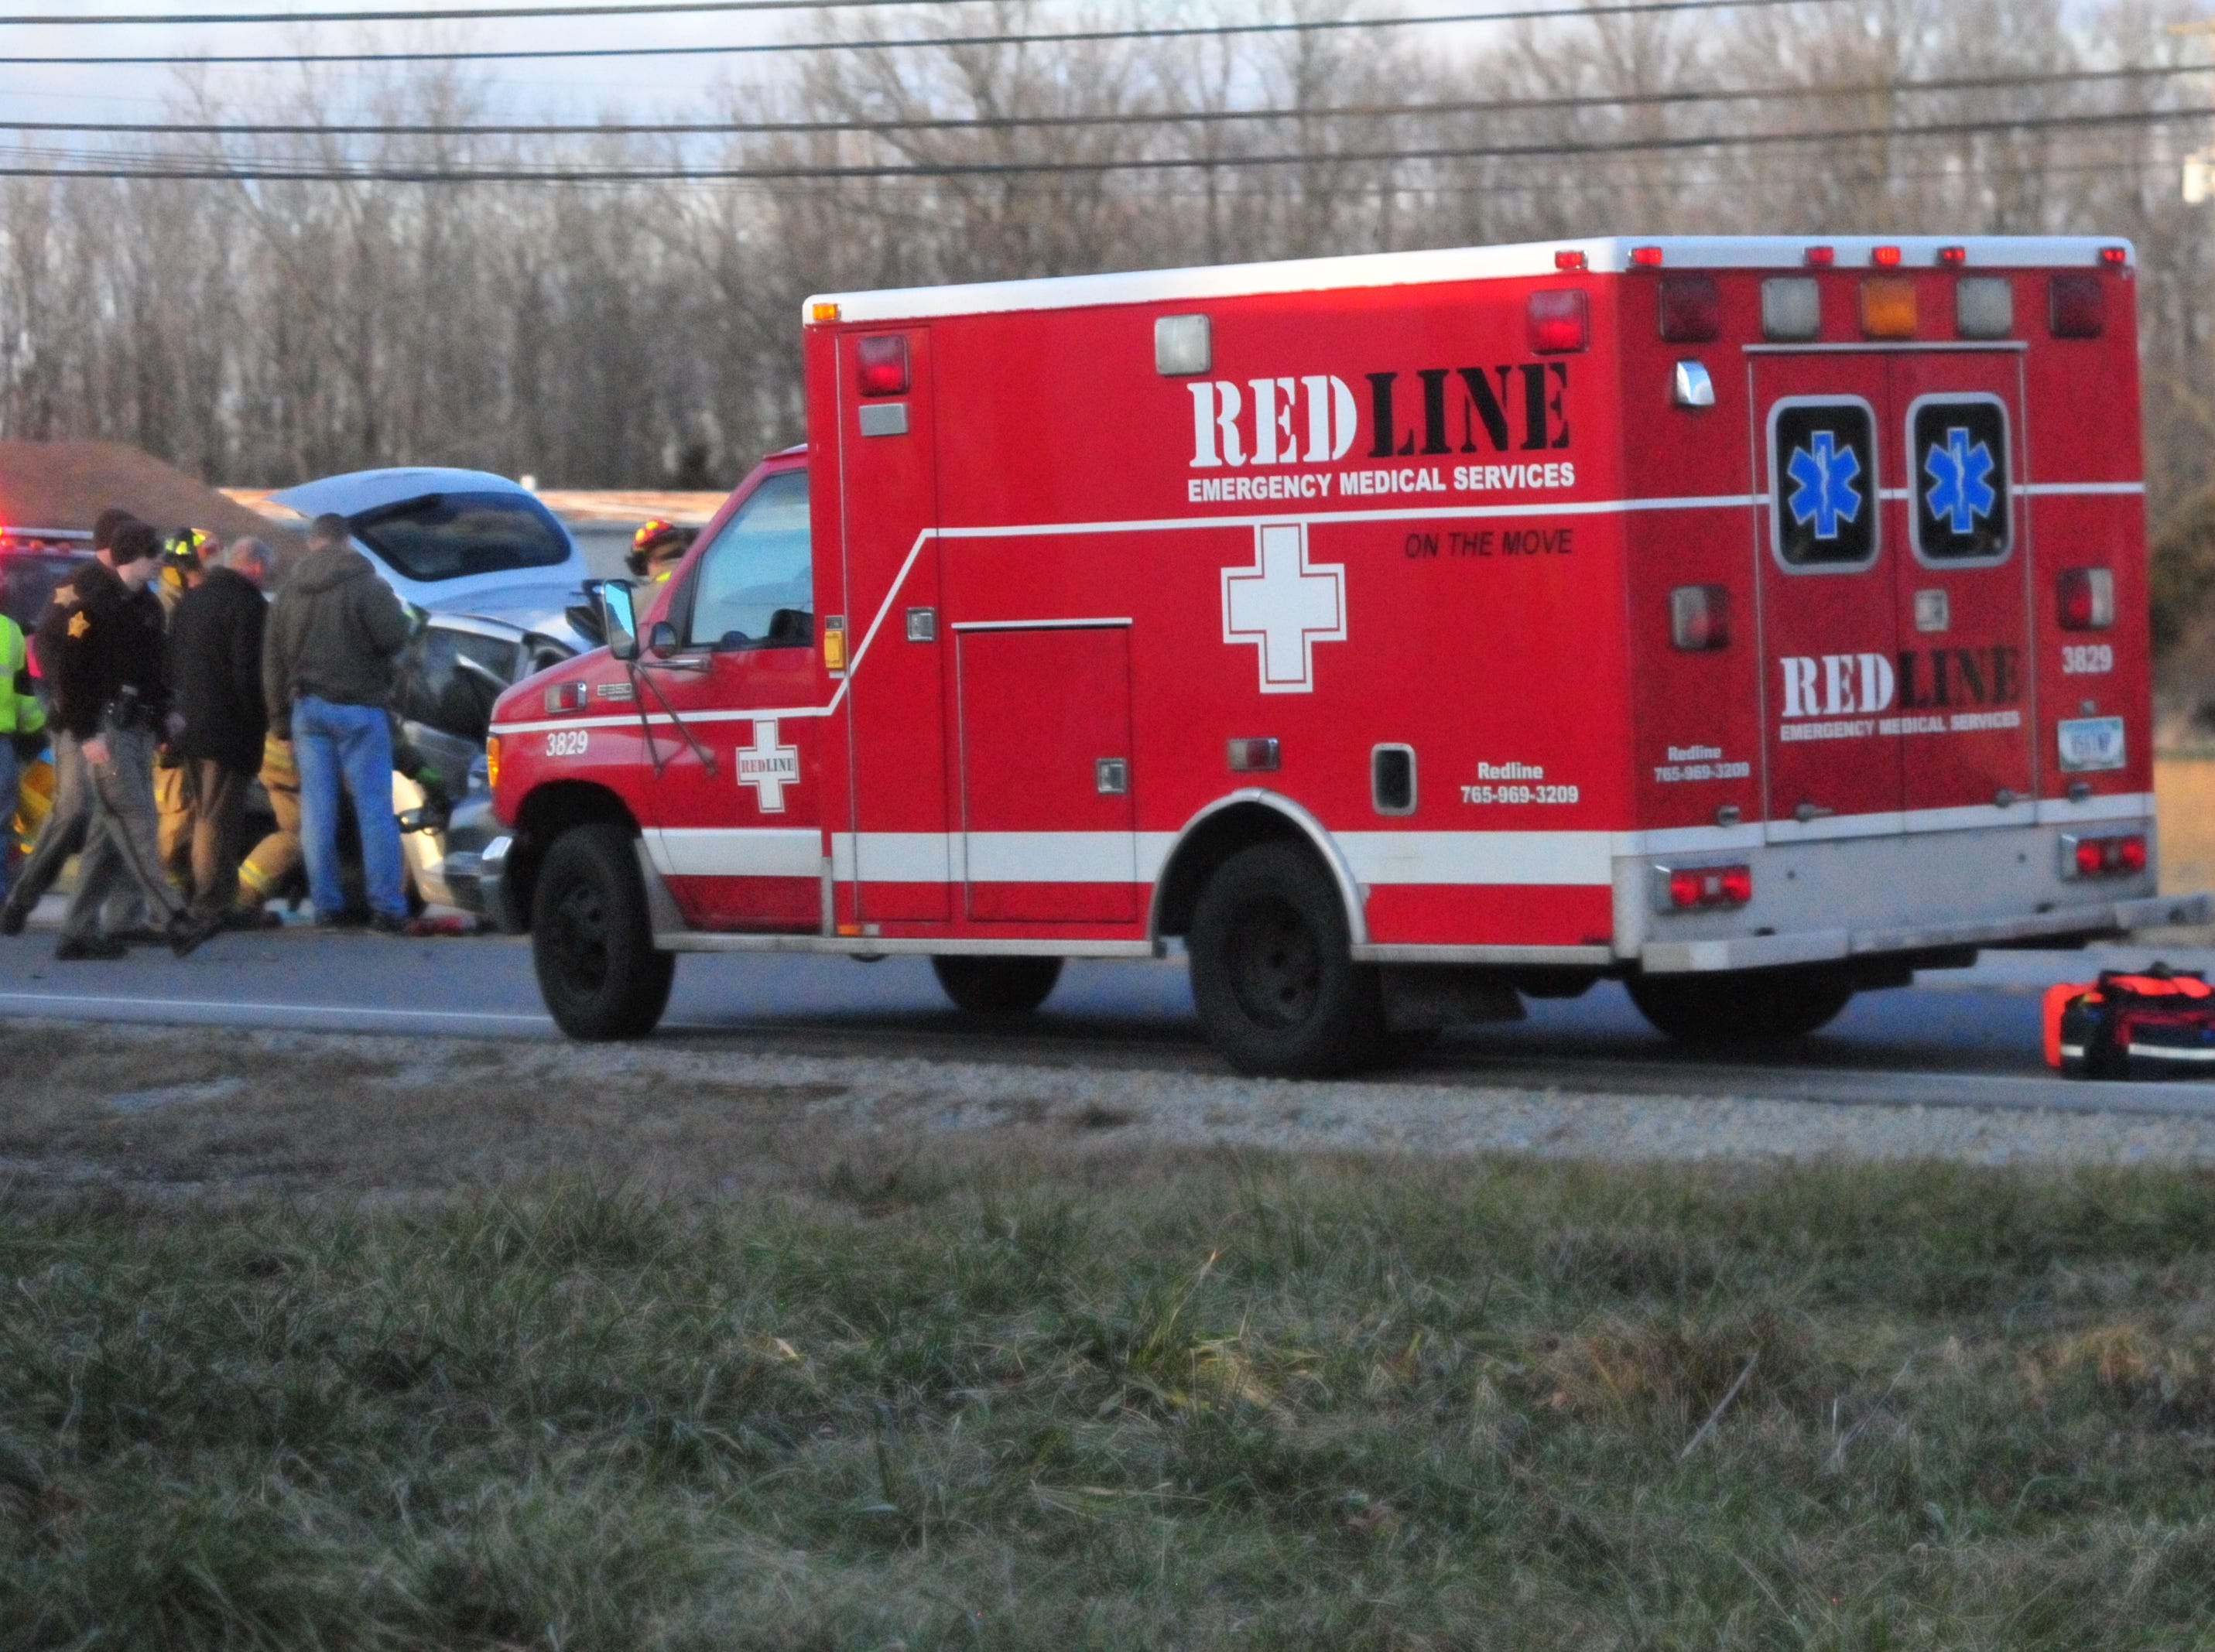 A Red Line ambulance responded to the scene of an accident on U.S. 35 involving a silver PT Cruiser.